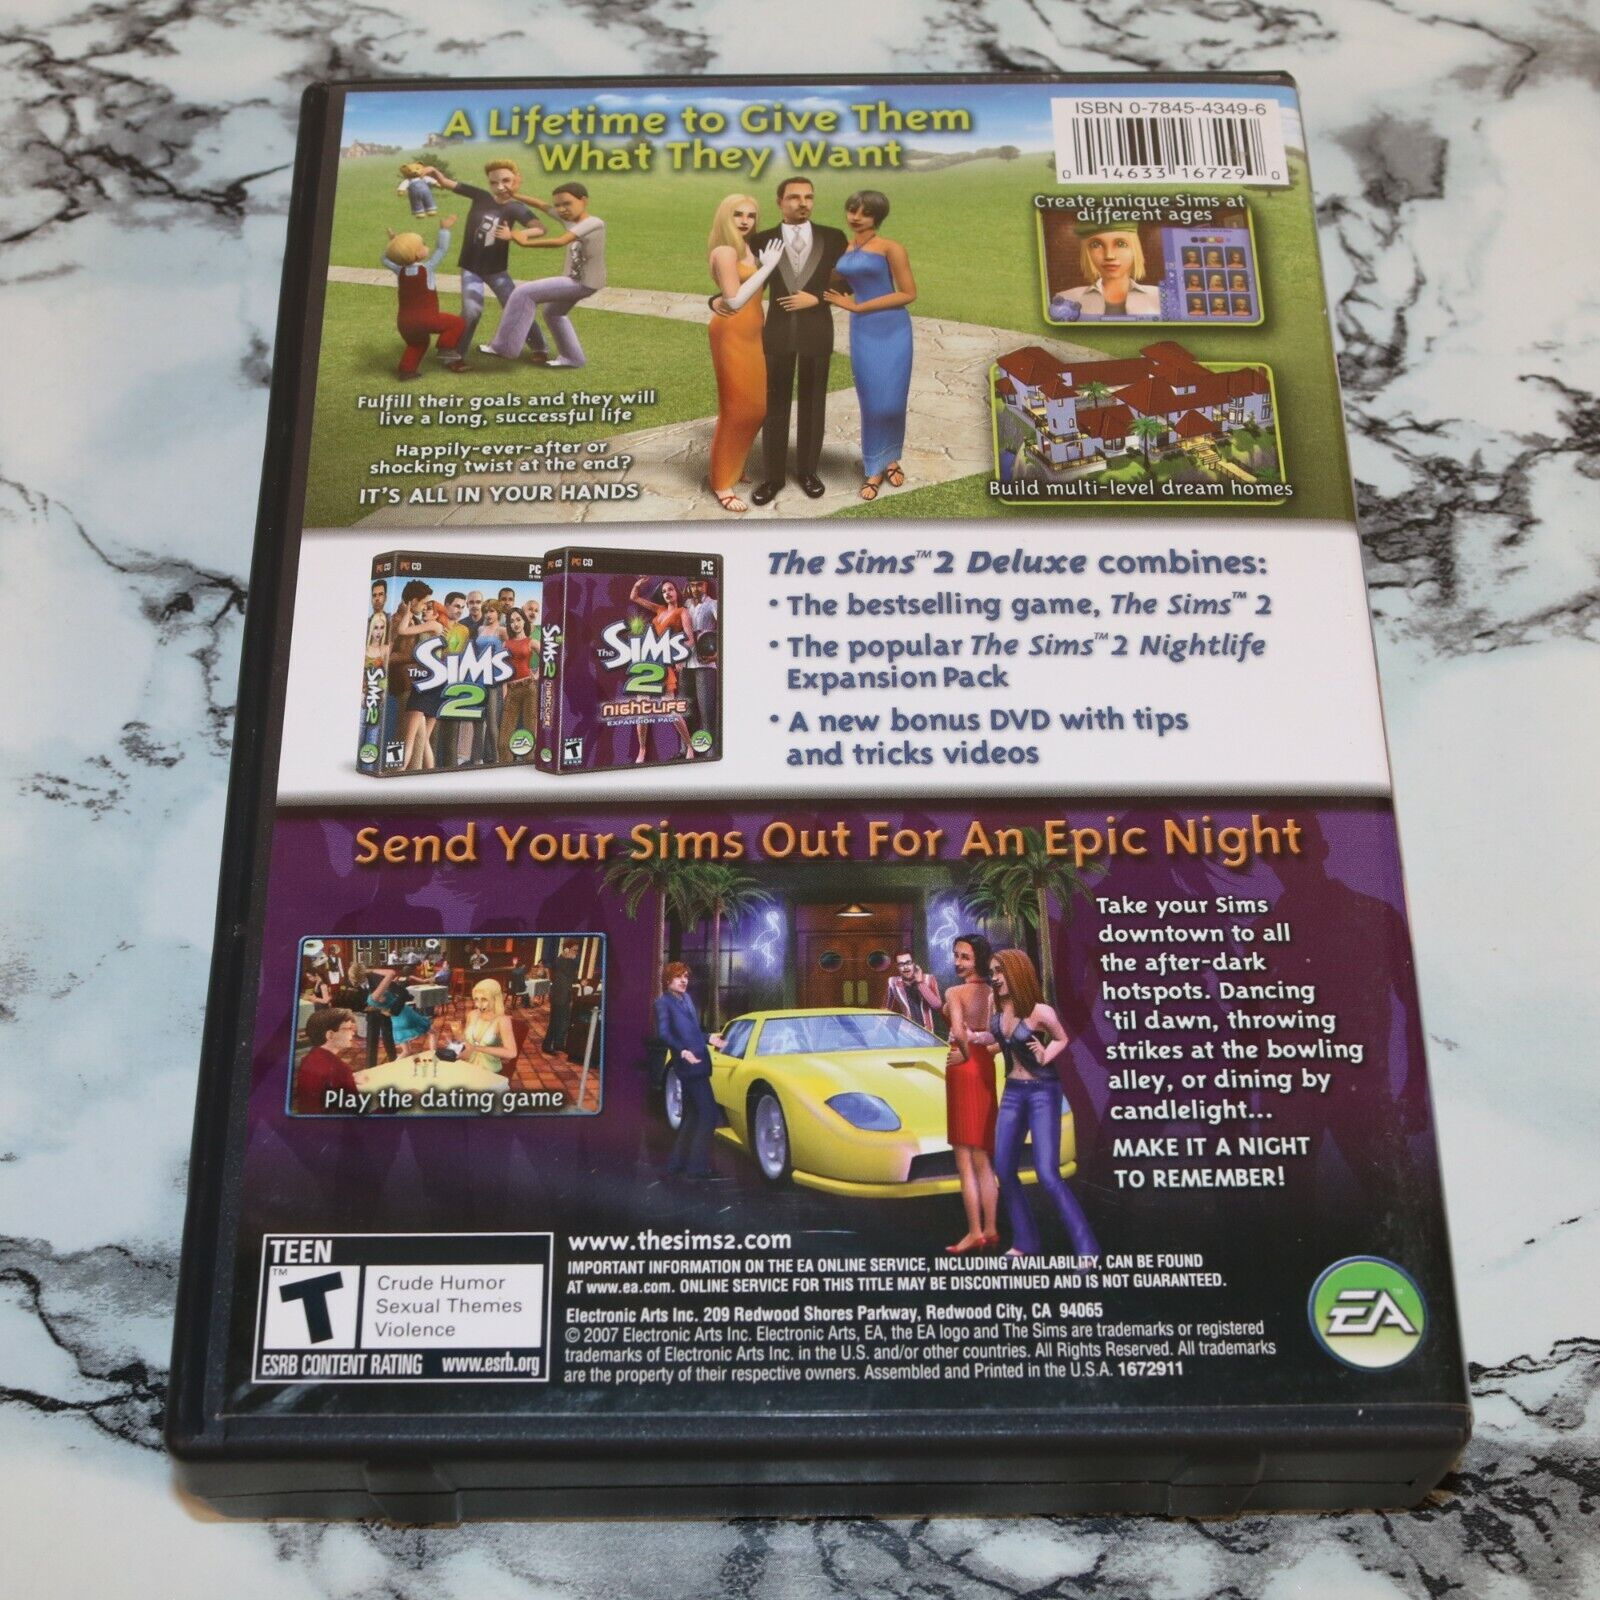 The Sims 2 Two Deluxe PC DVD-ROM -- Complete W/ Manual Key Bonus DVD - $11.18